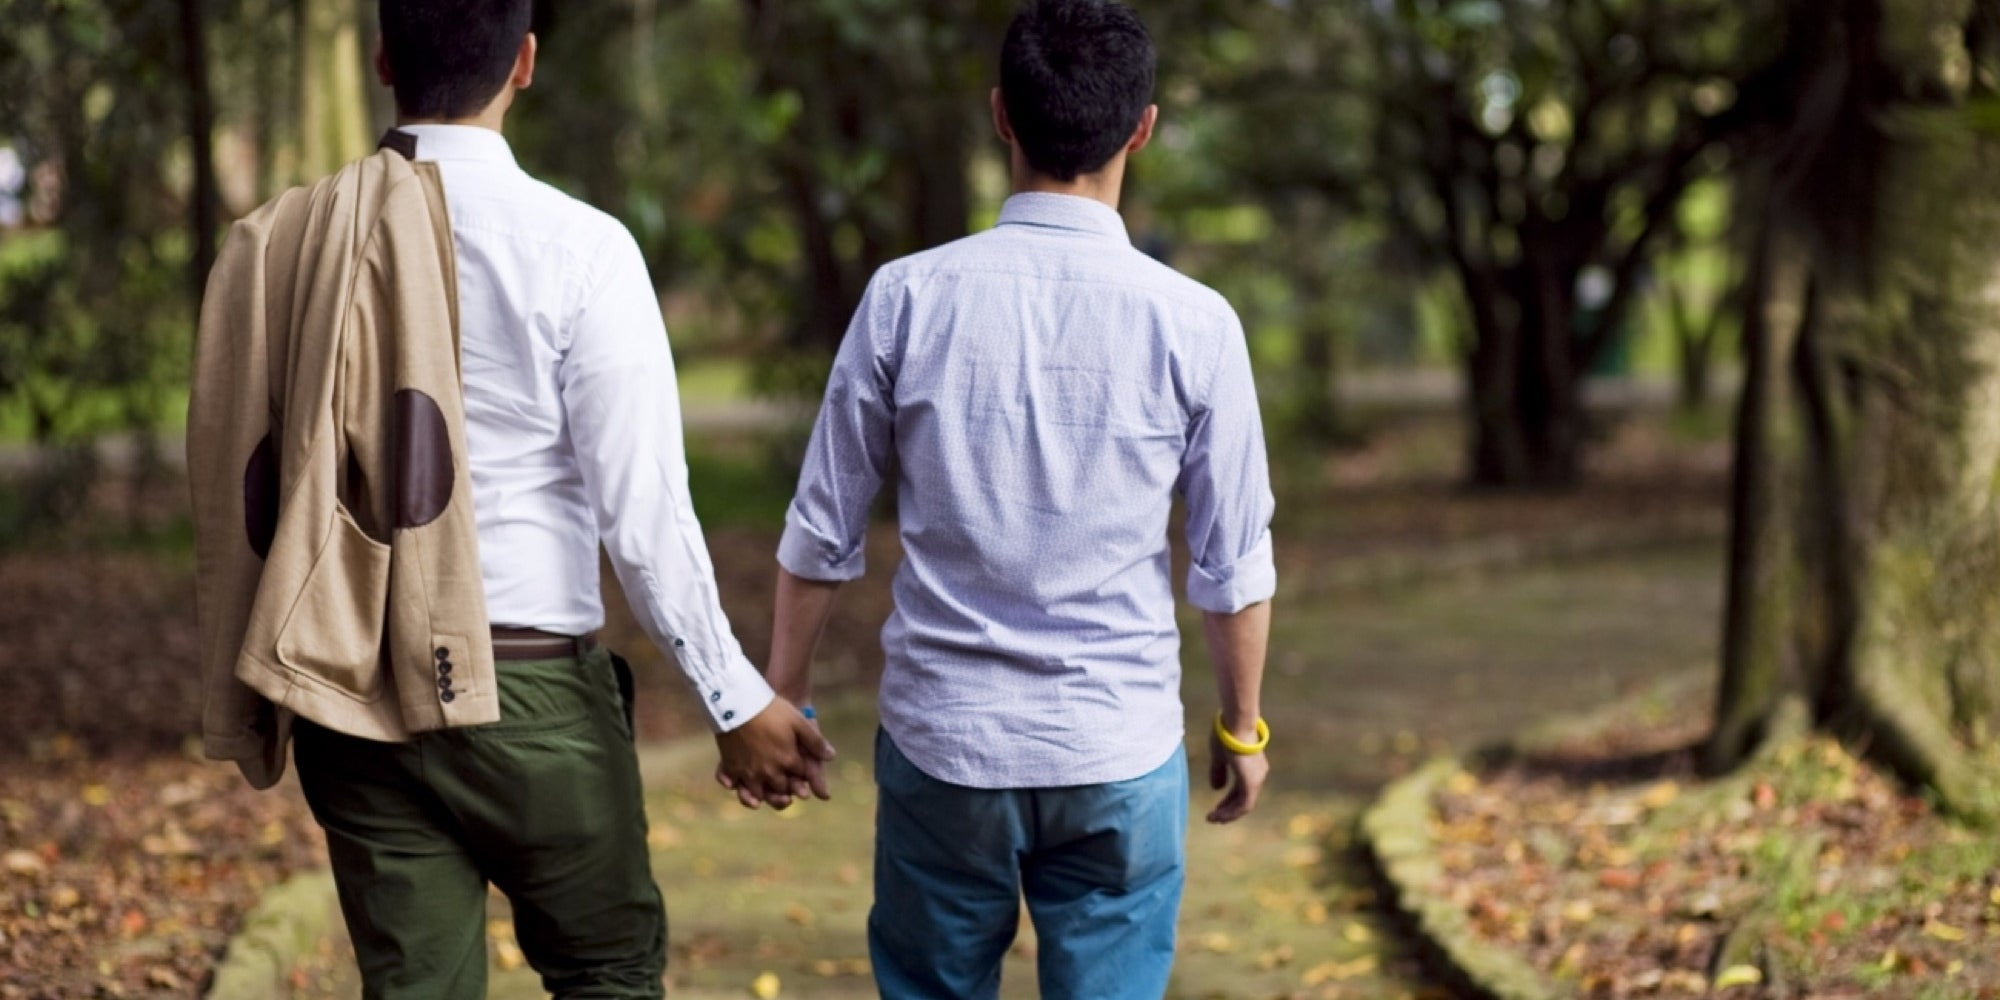 The Curious Case of Queer Rights